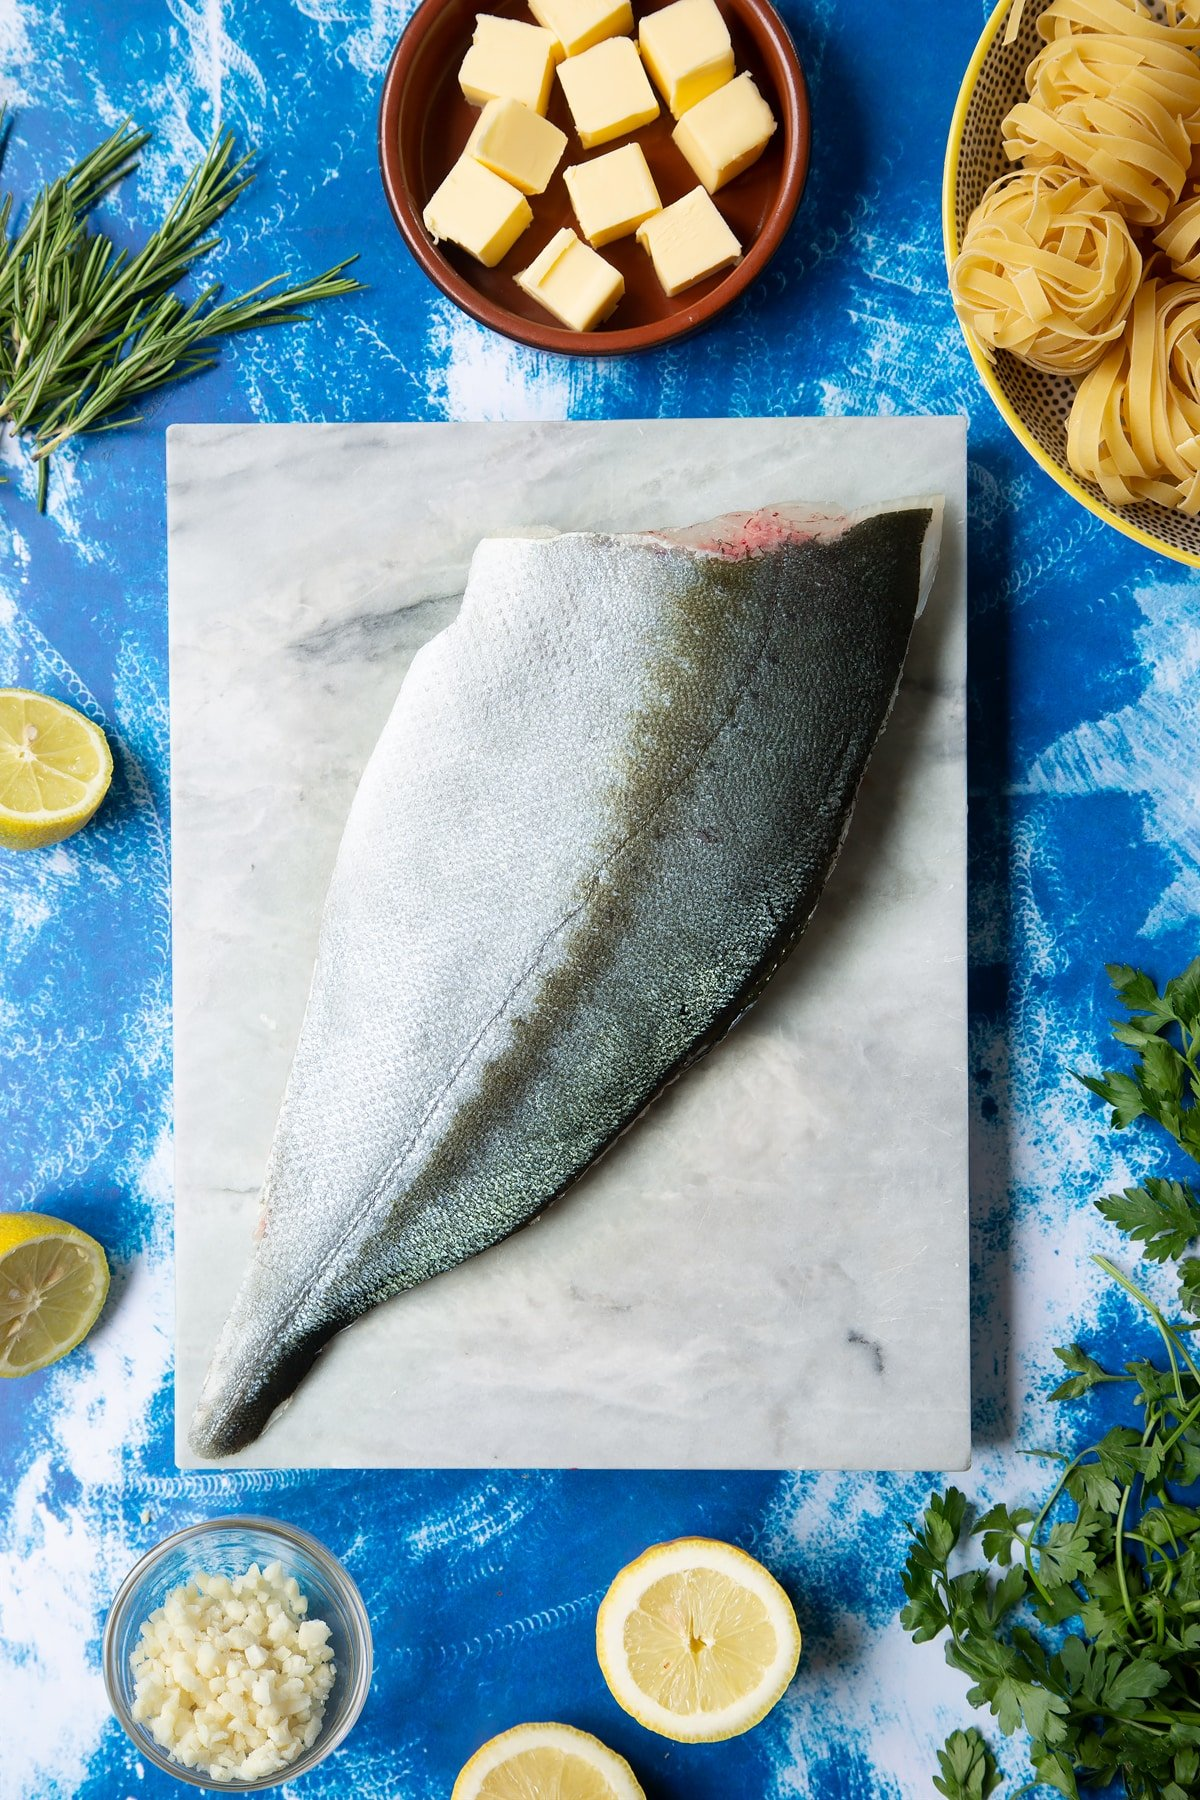 A Dutch Yellowtail fillet on a marble board, skin side up